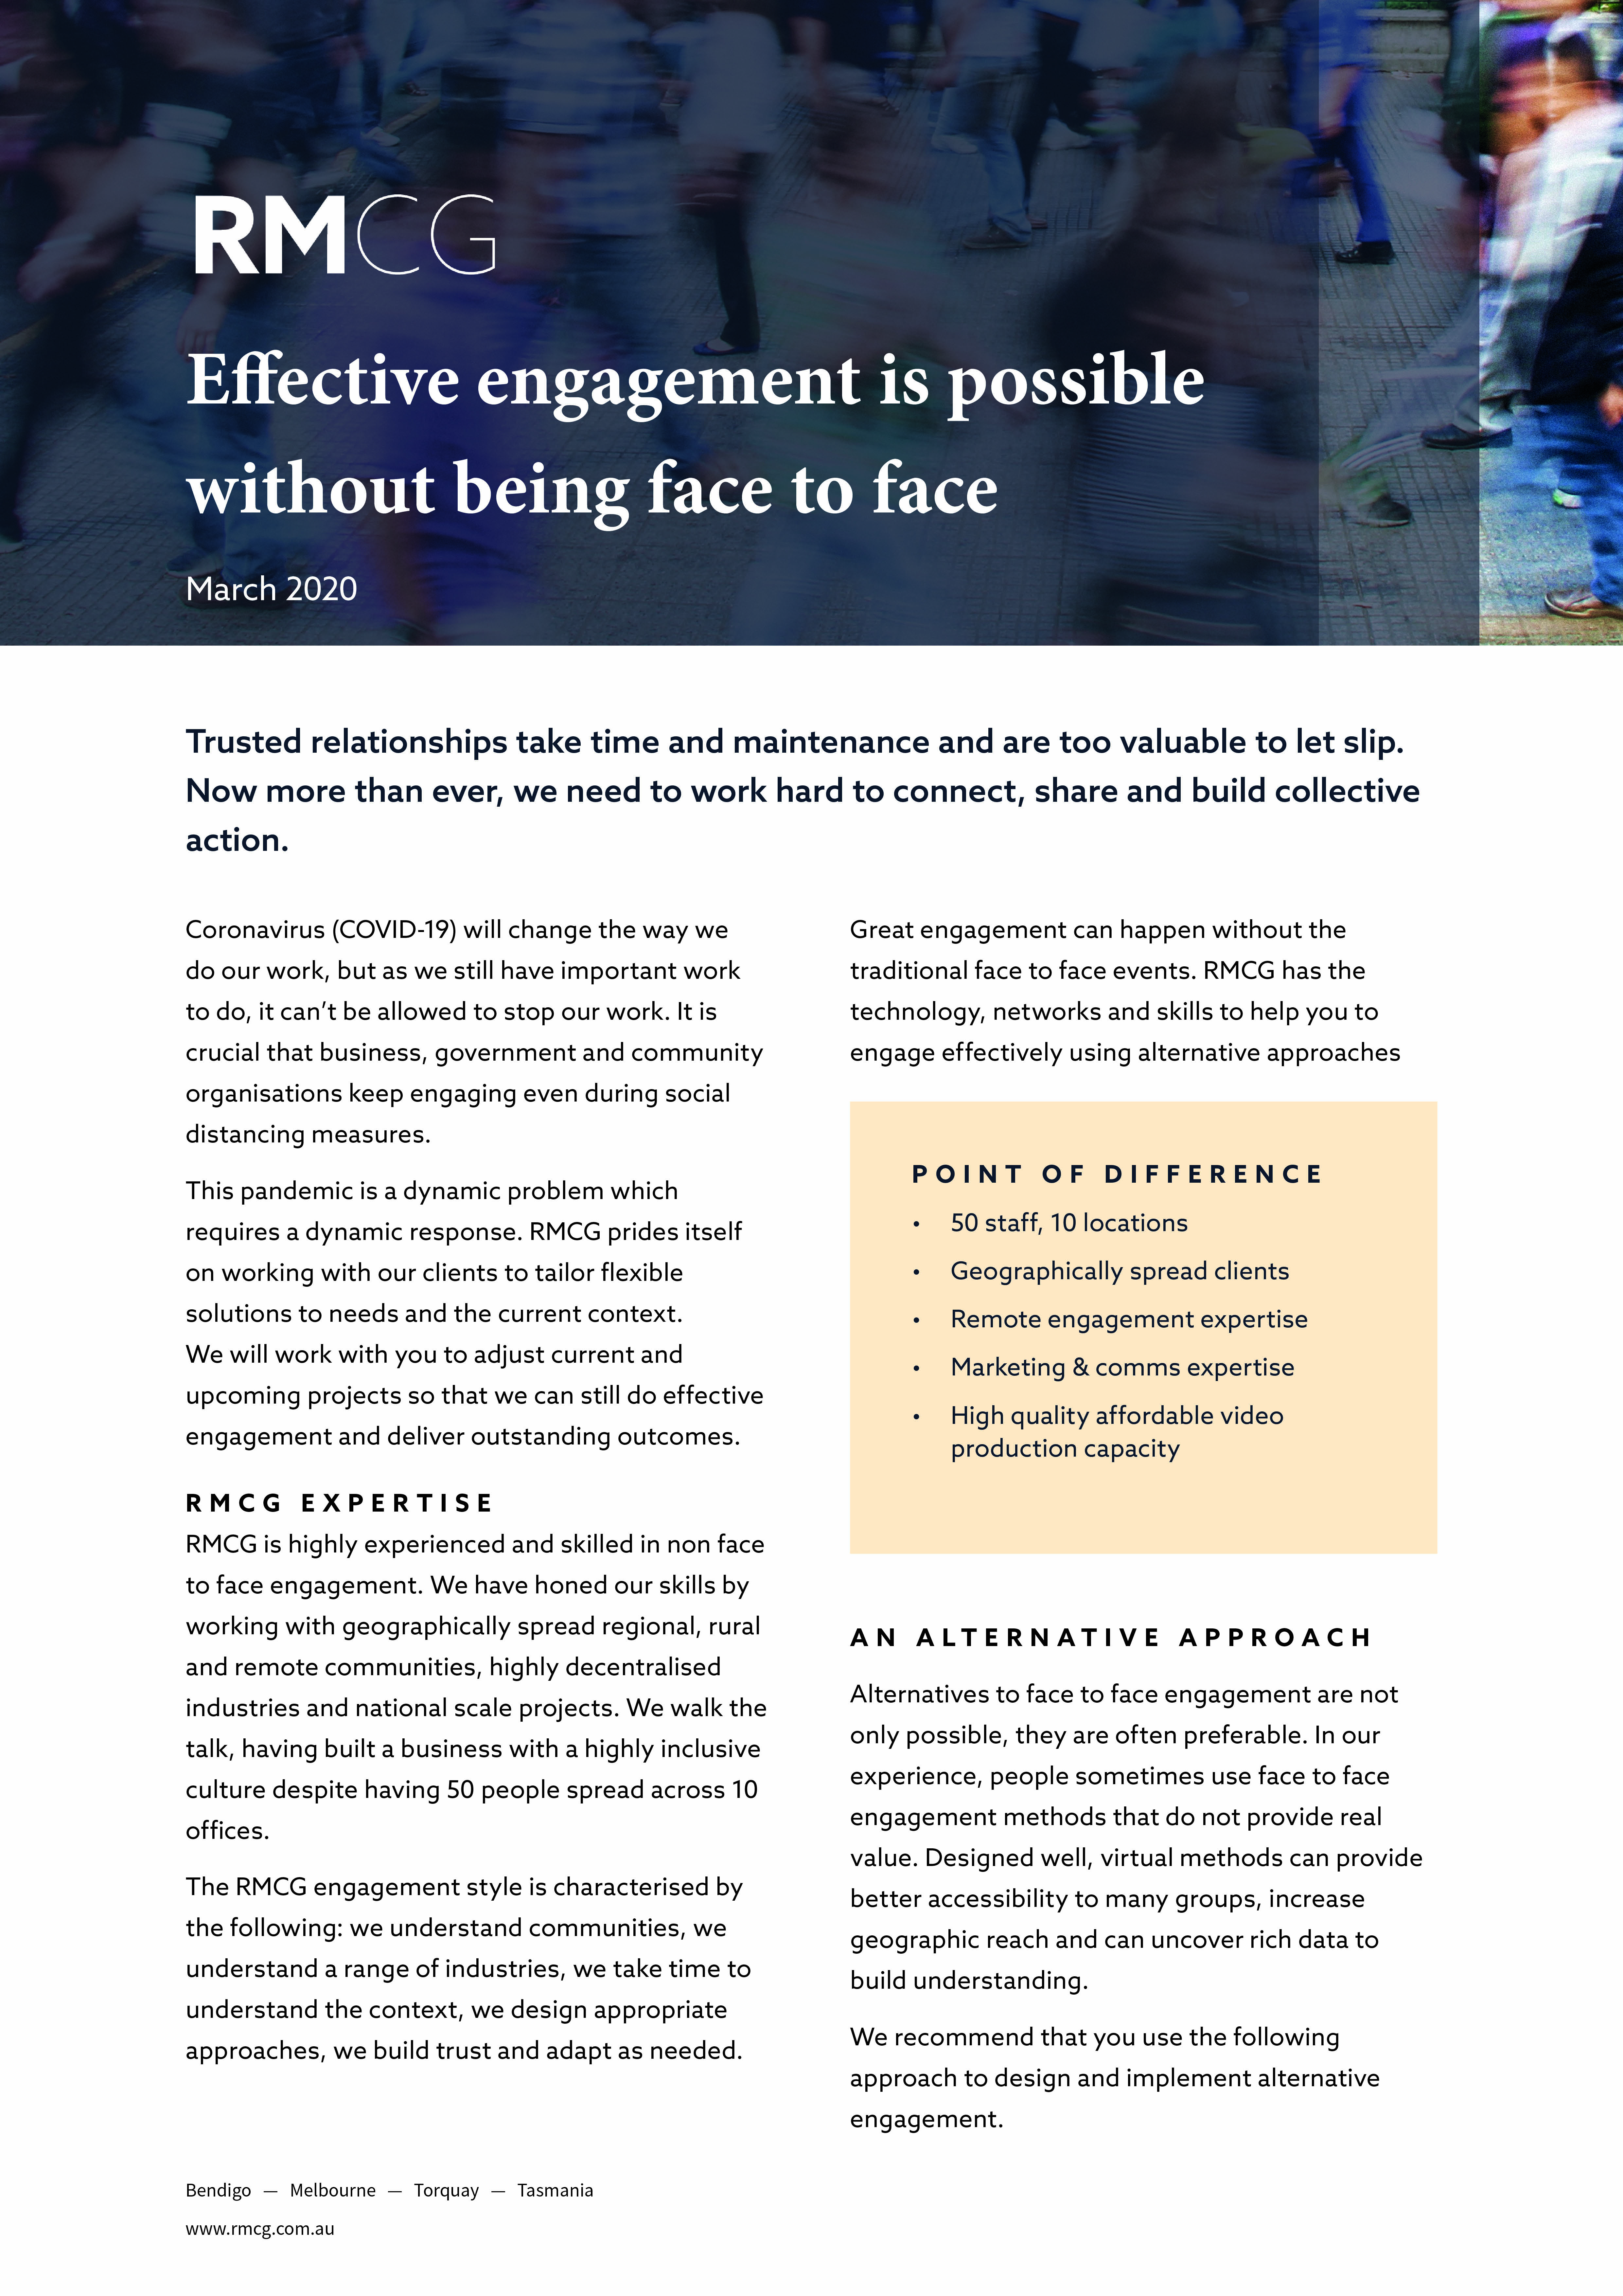 RMCG_FactSheet_Engagement1